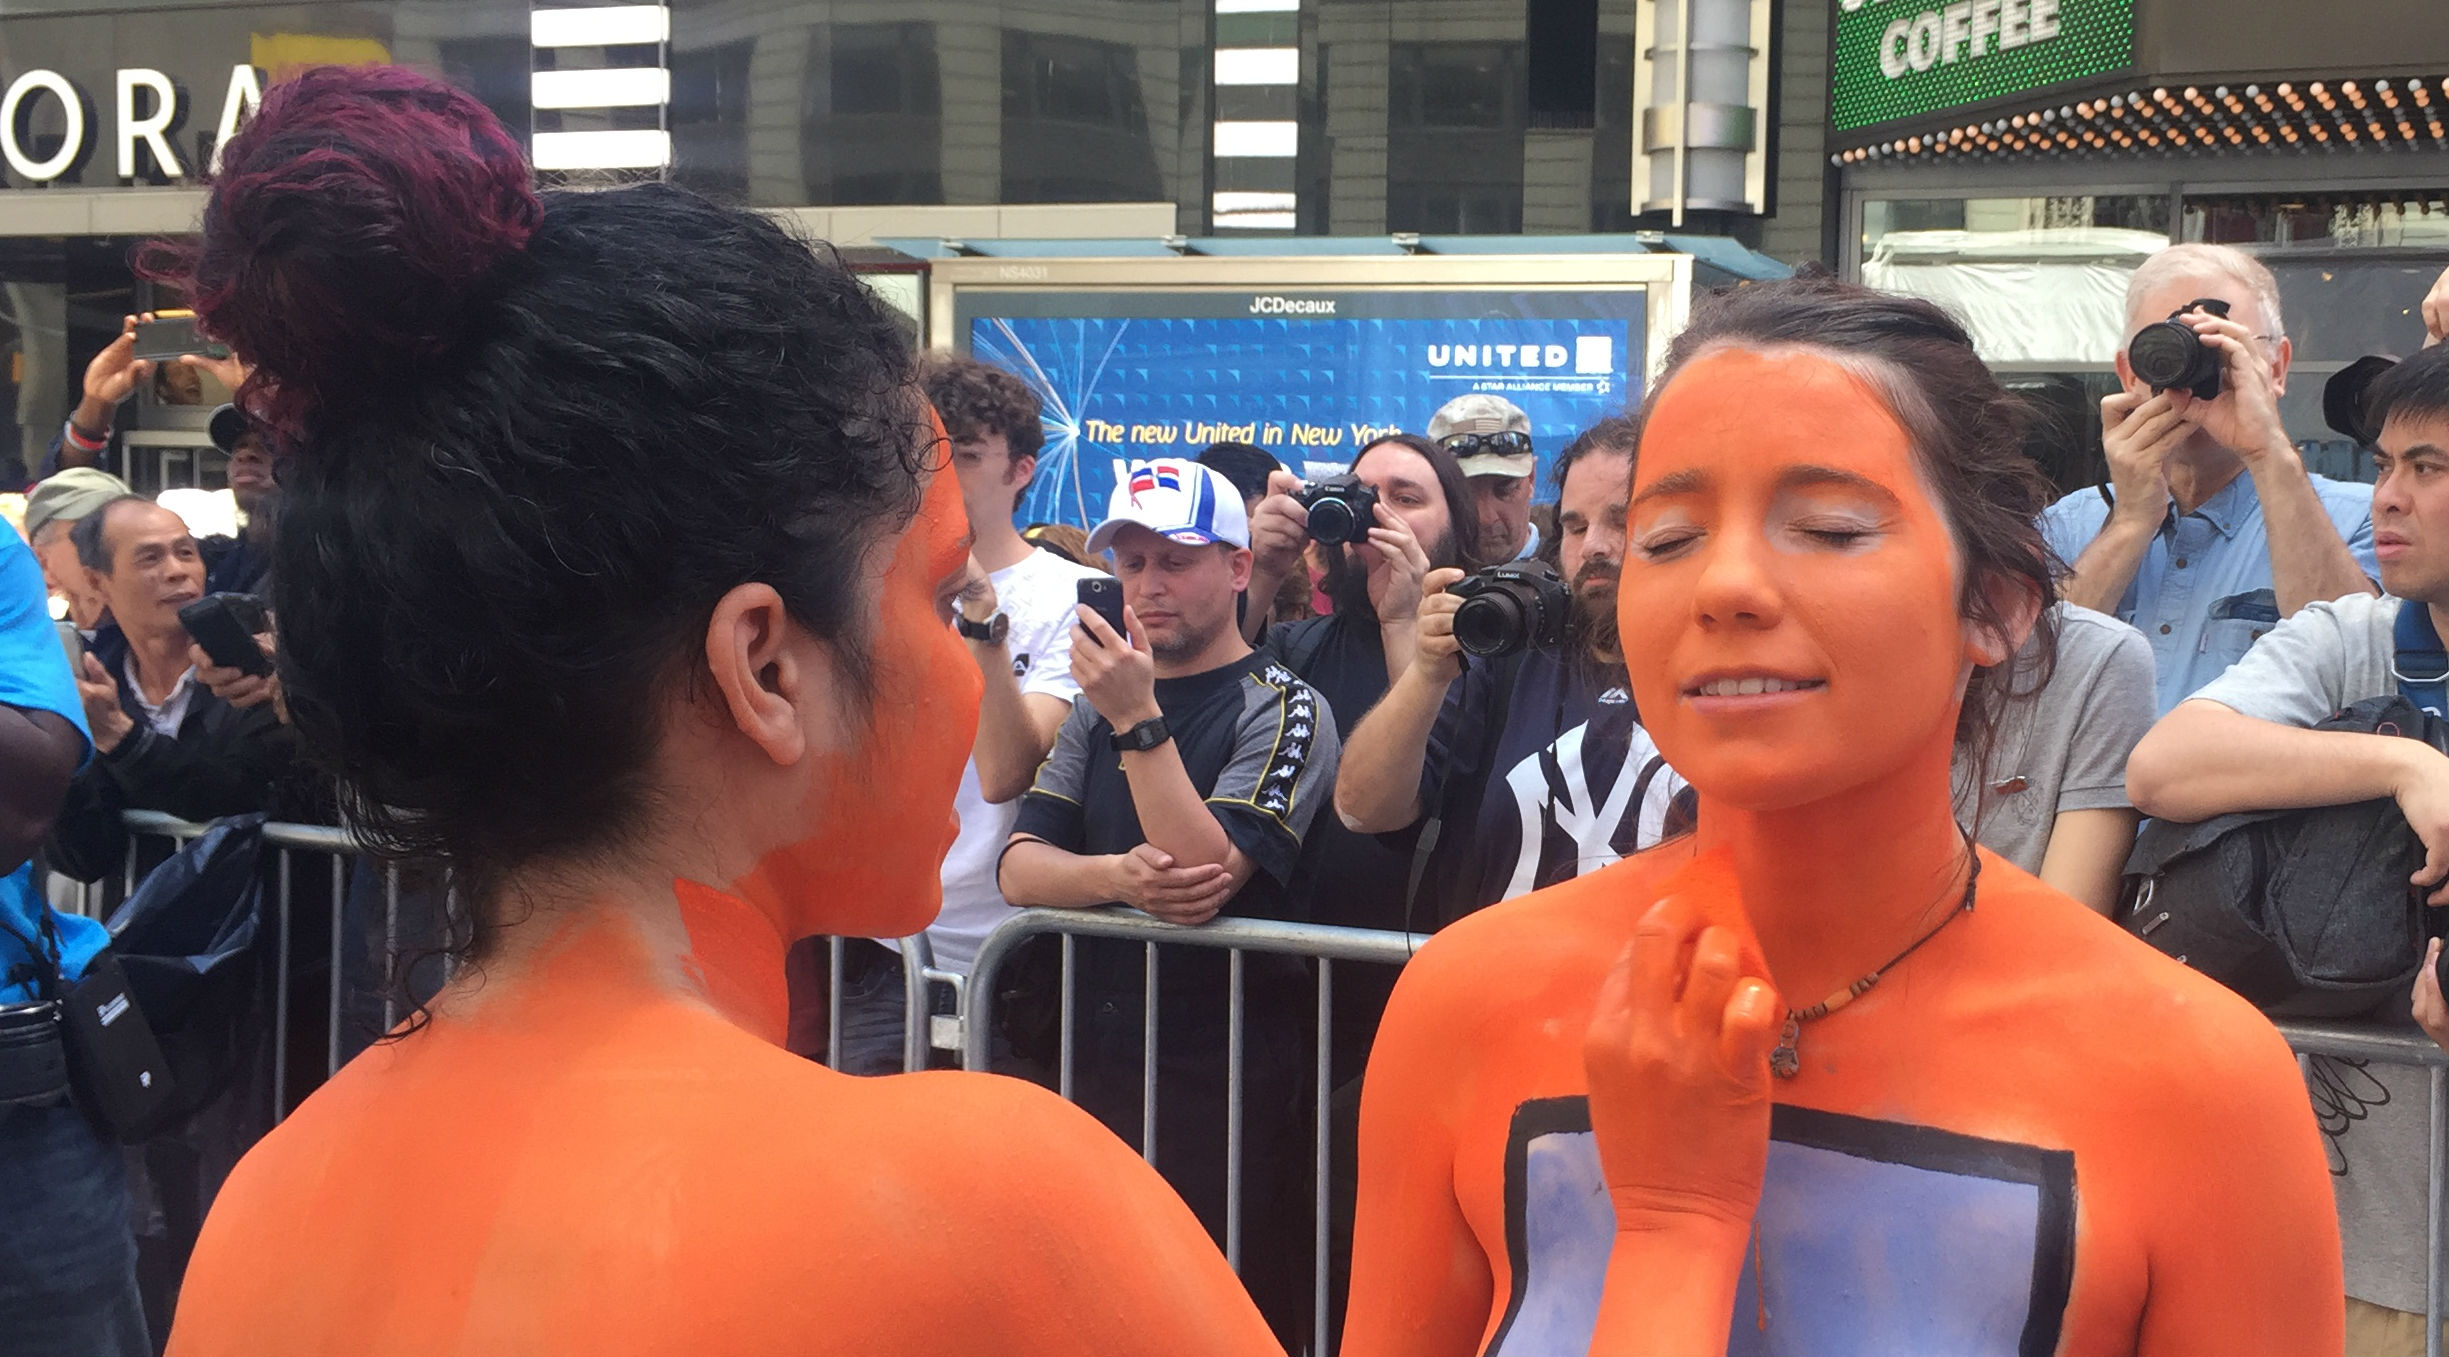 Nude Models Take Over Times Square for Body Painting